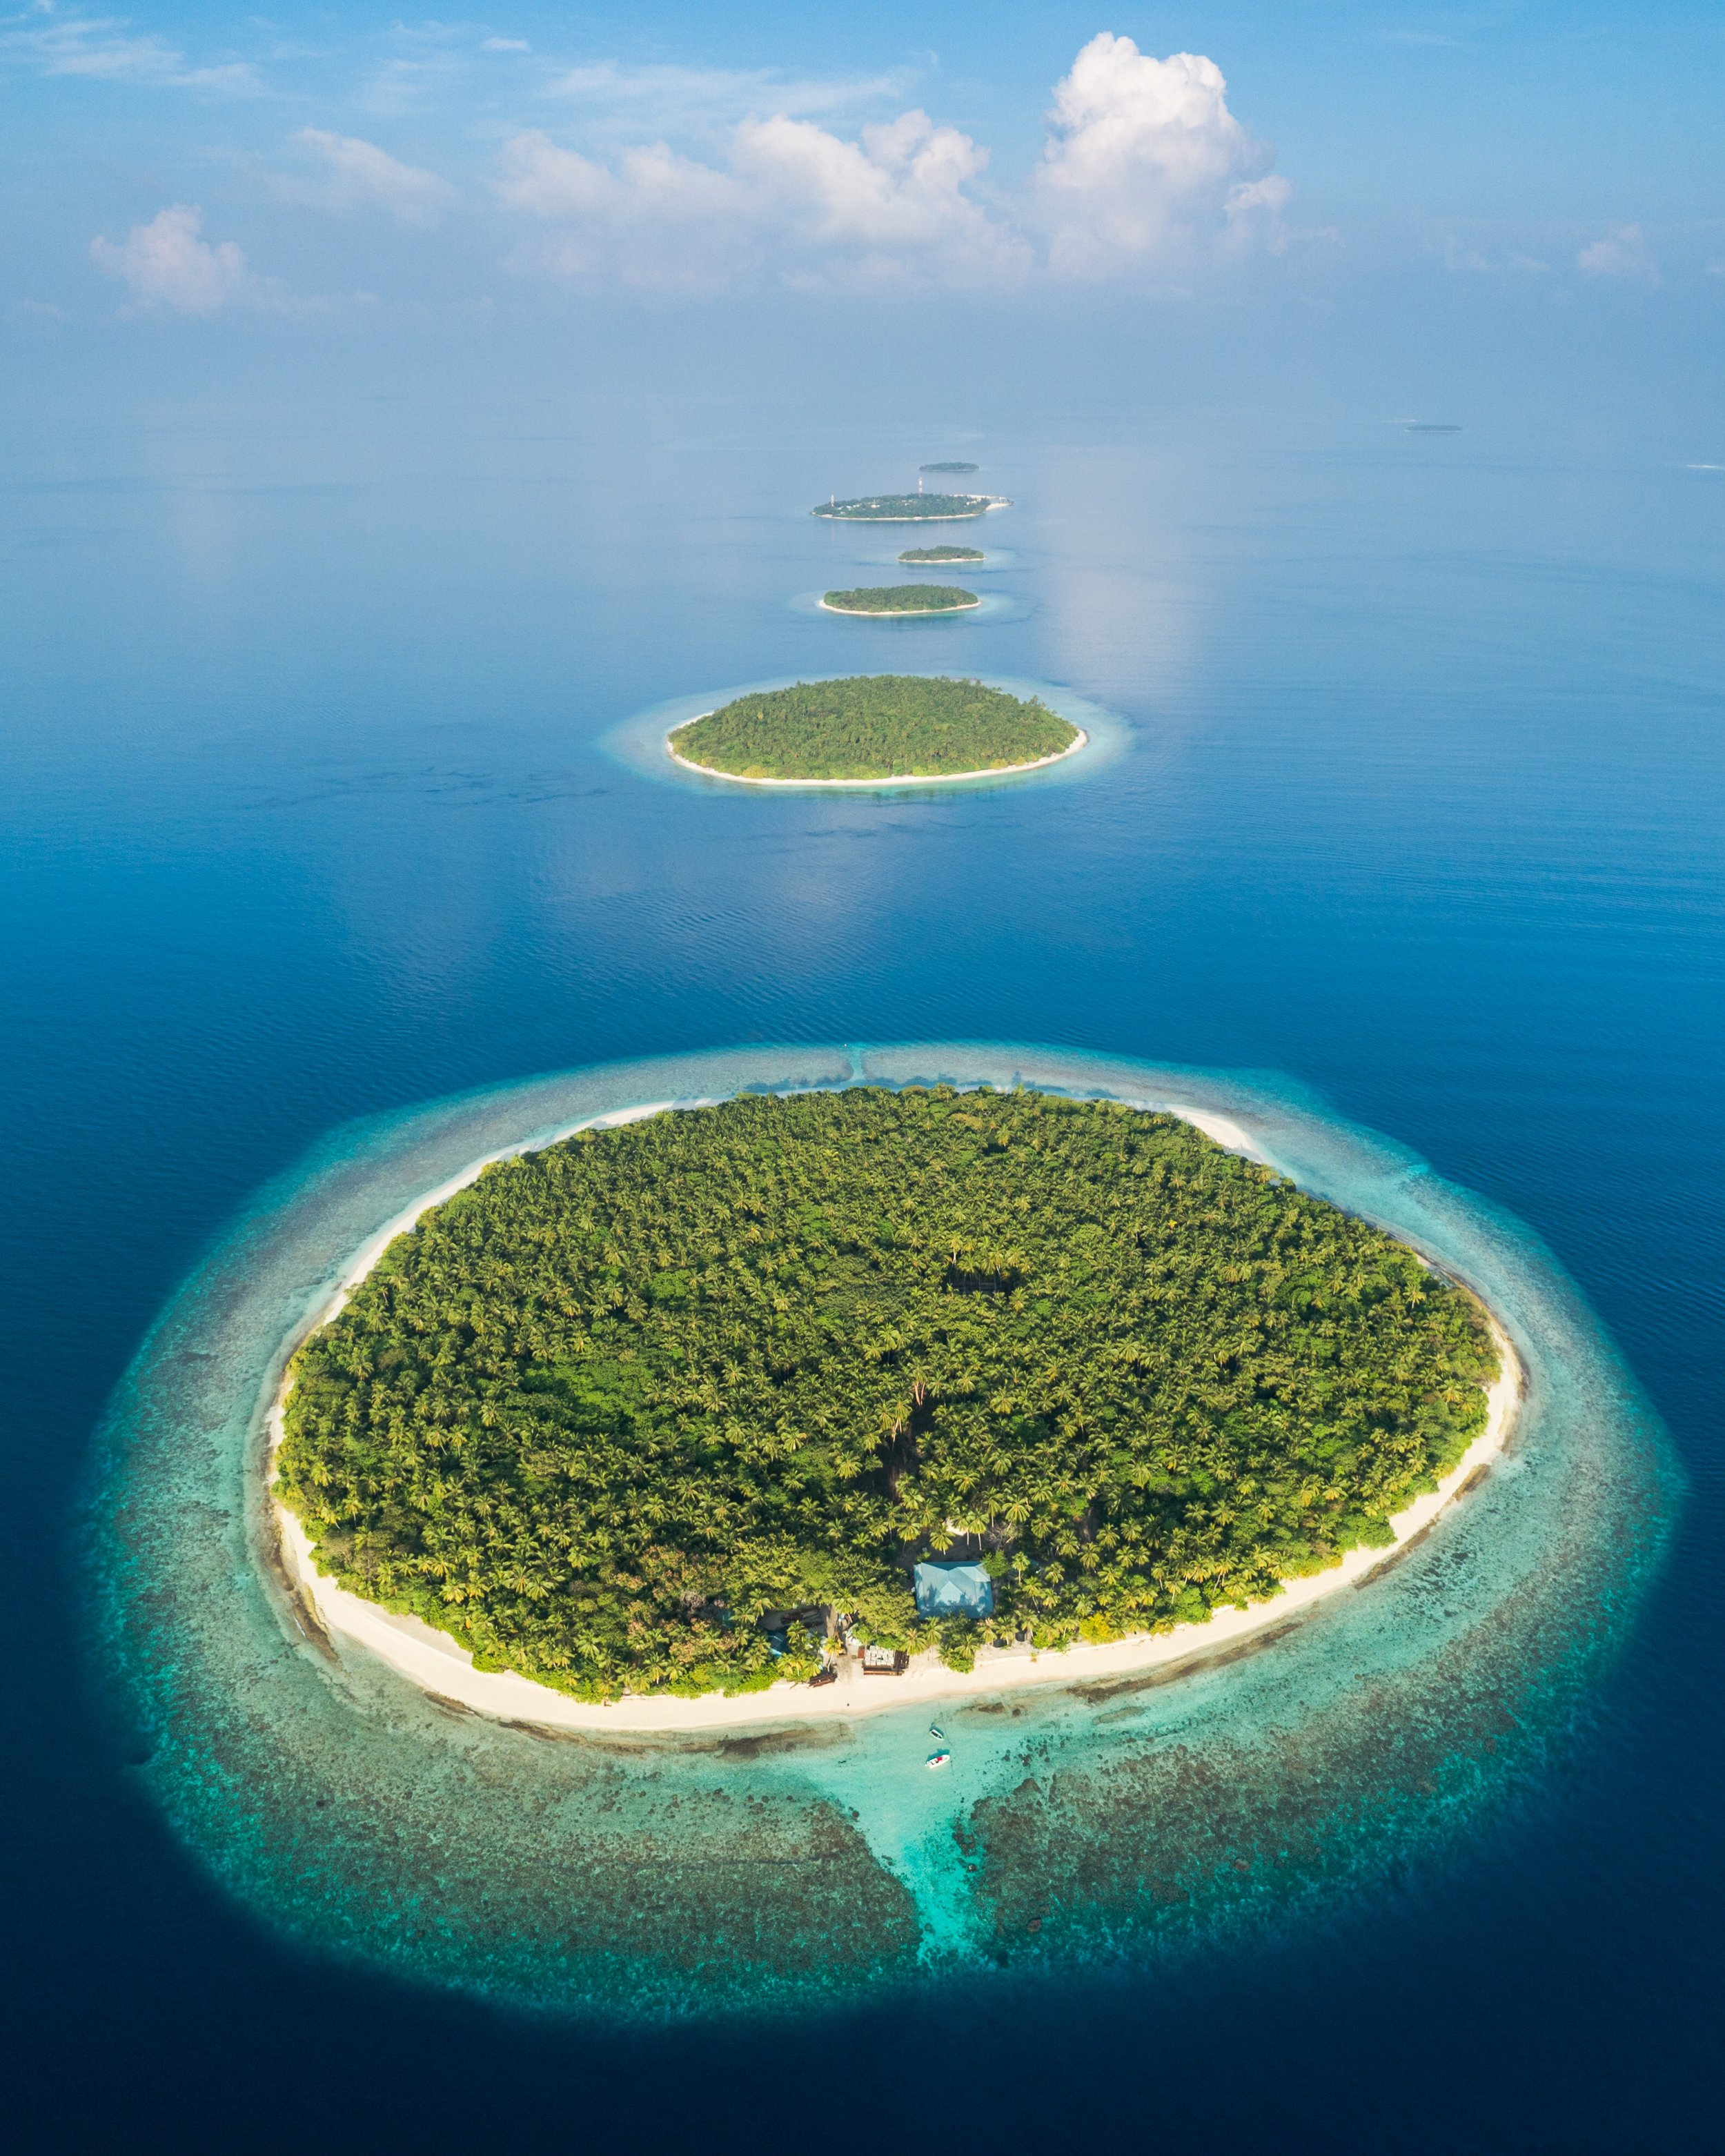 Islands in the maldives credit: Ishan Hassan / coral reef image bank